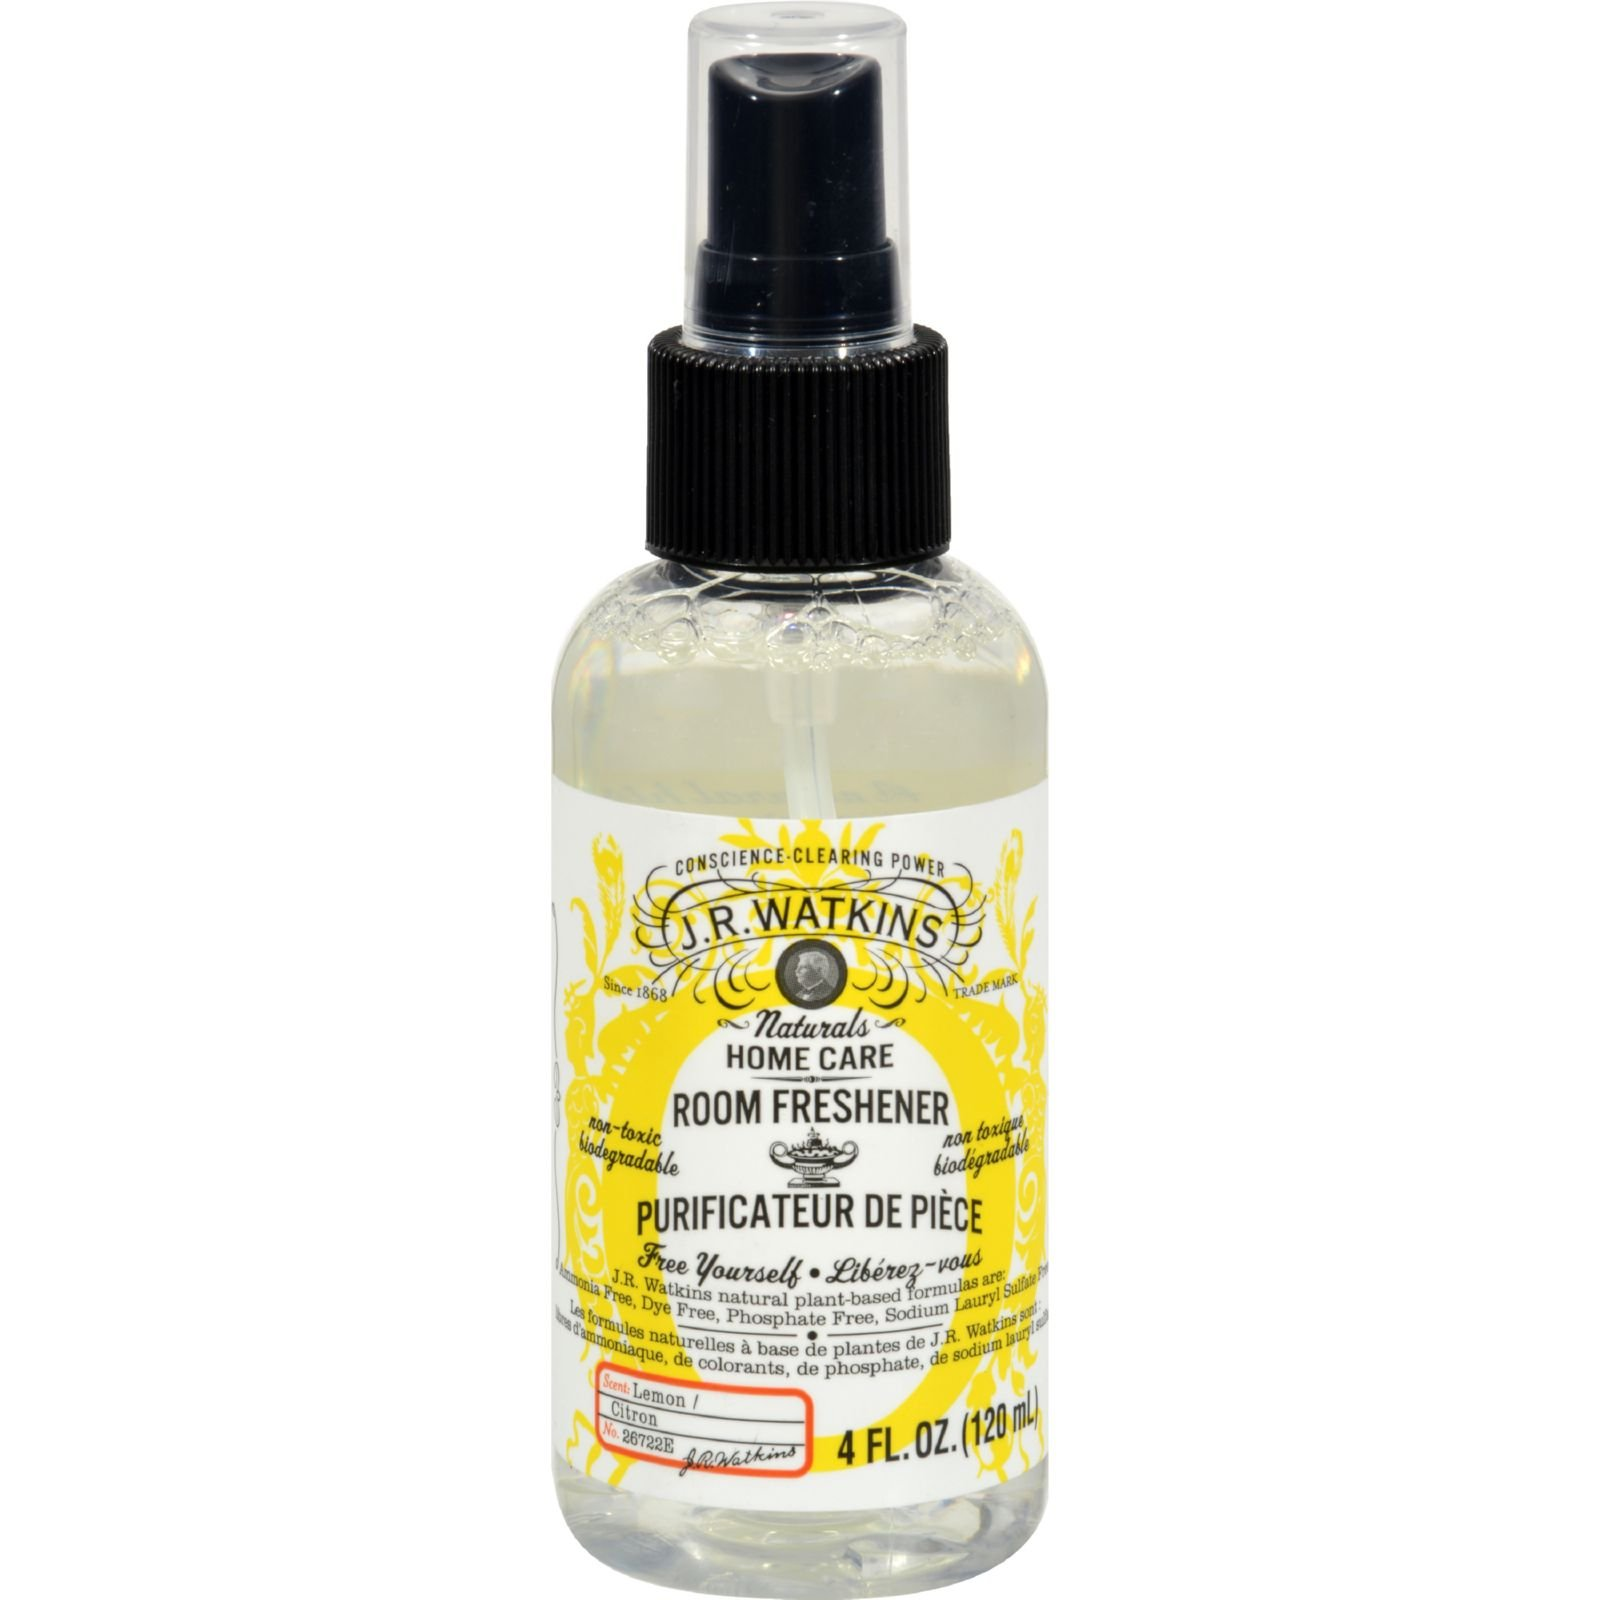 J.R. Watkins Room Freshener Lemon - Non Toxic - Biodegradable - Long lasting - 4 oz (Pack of 4)